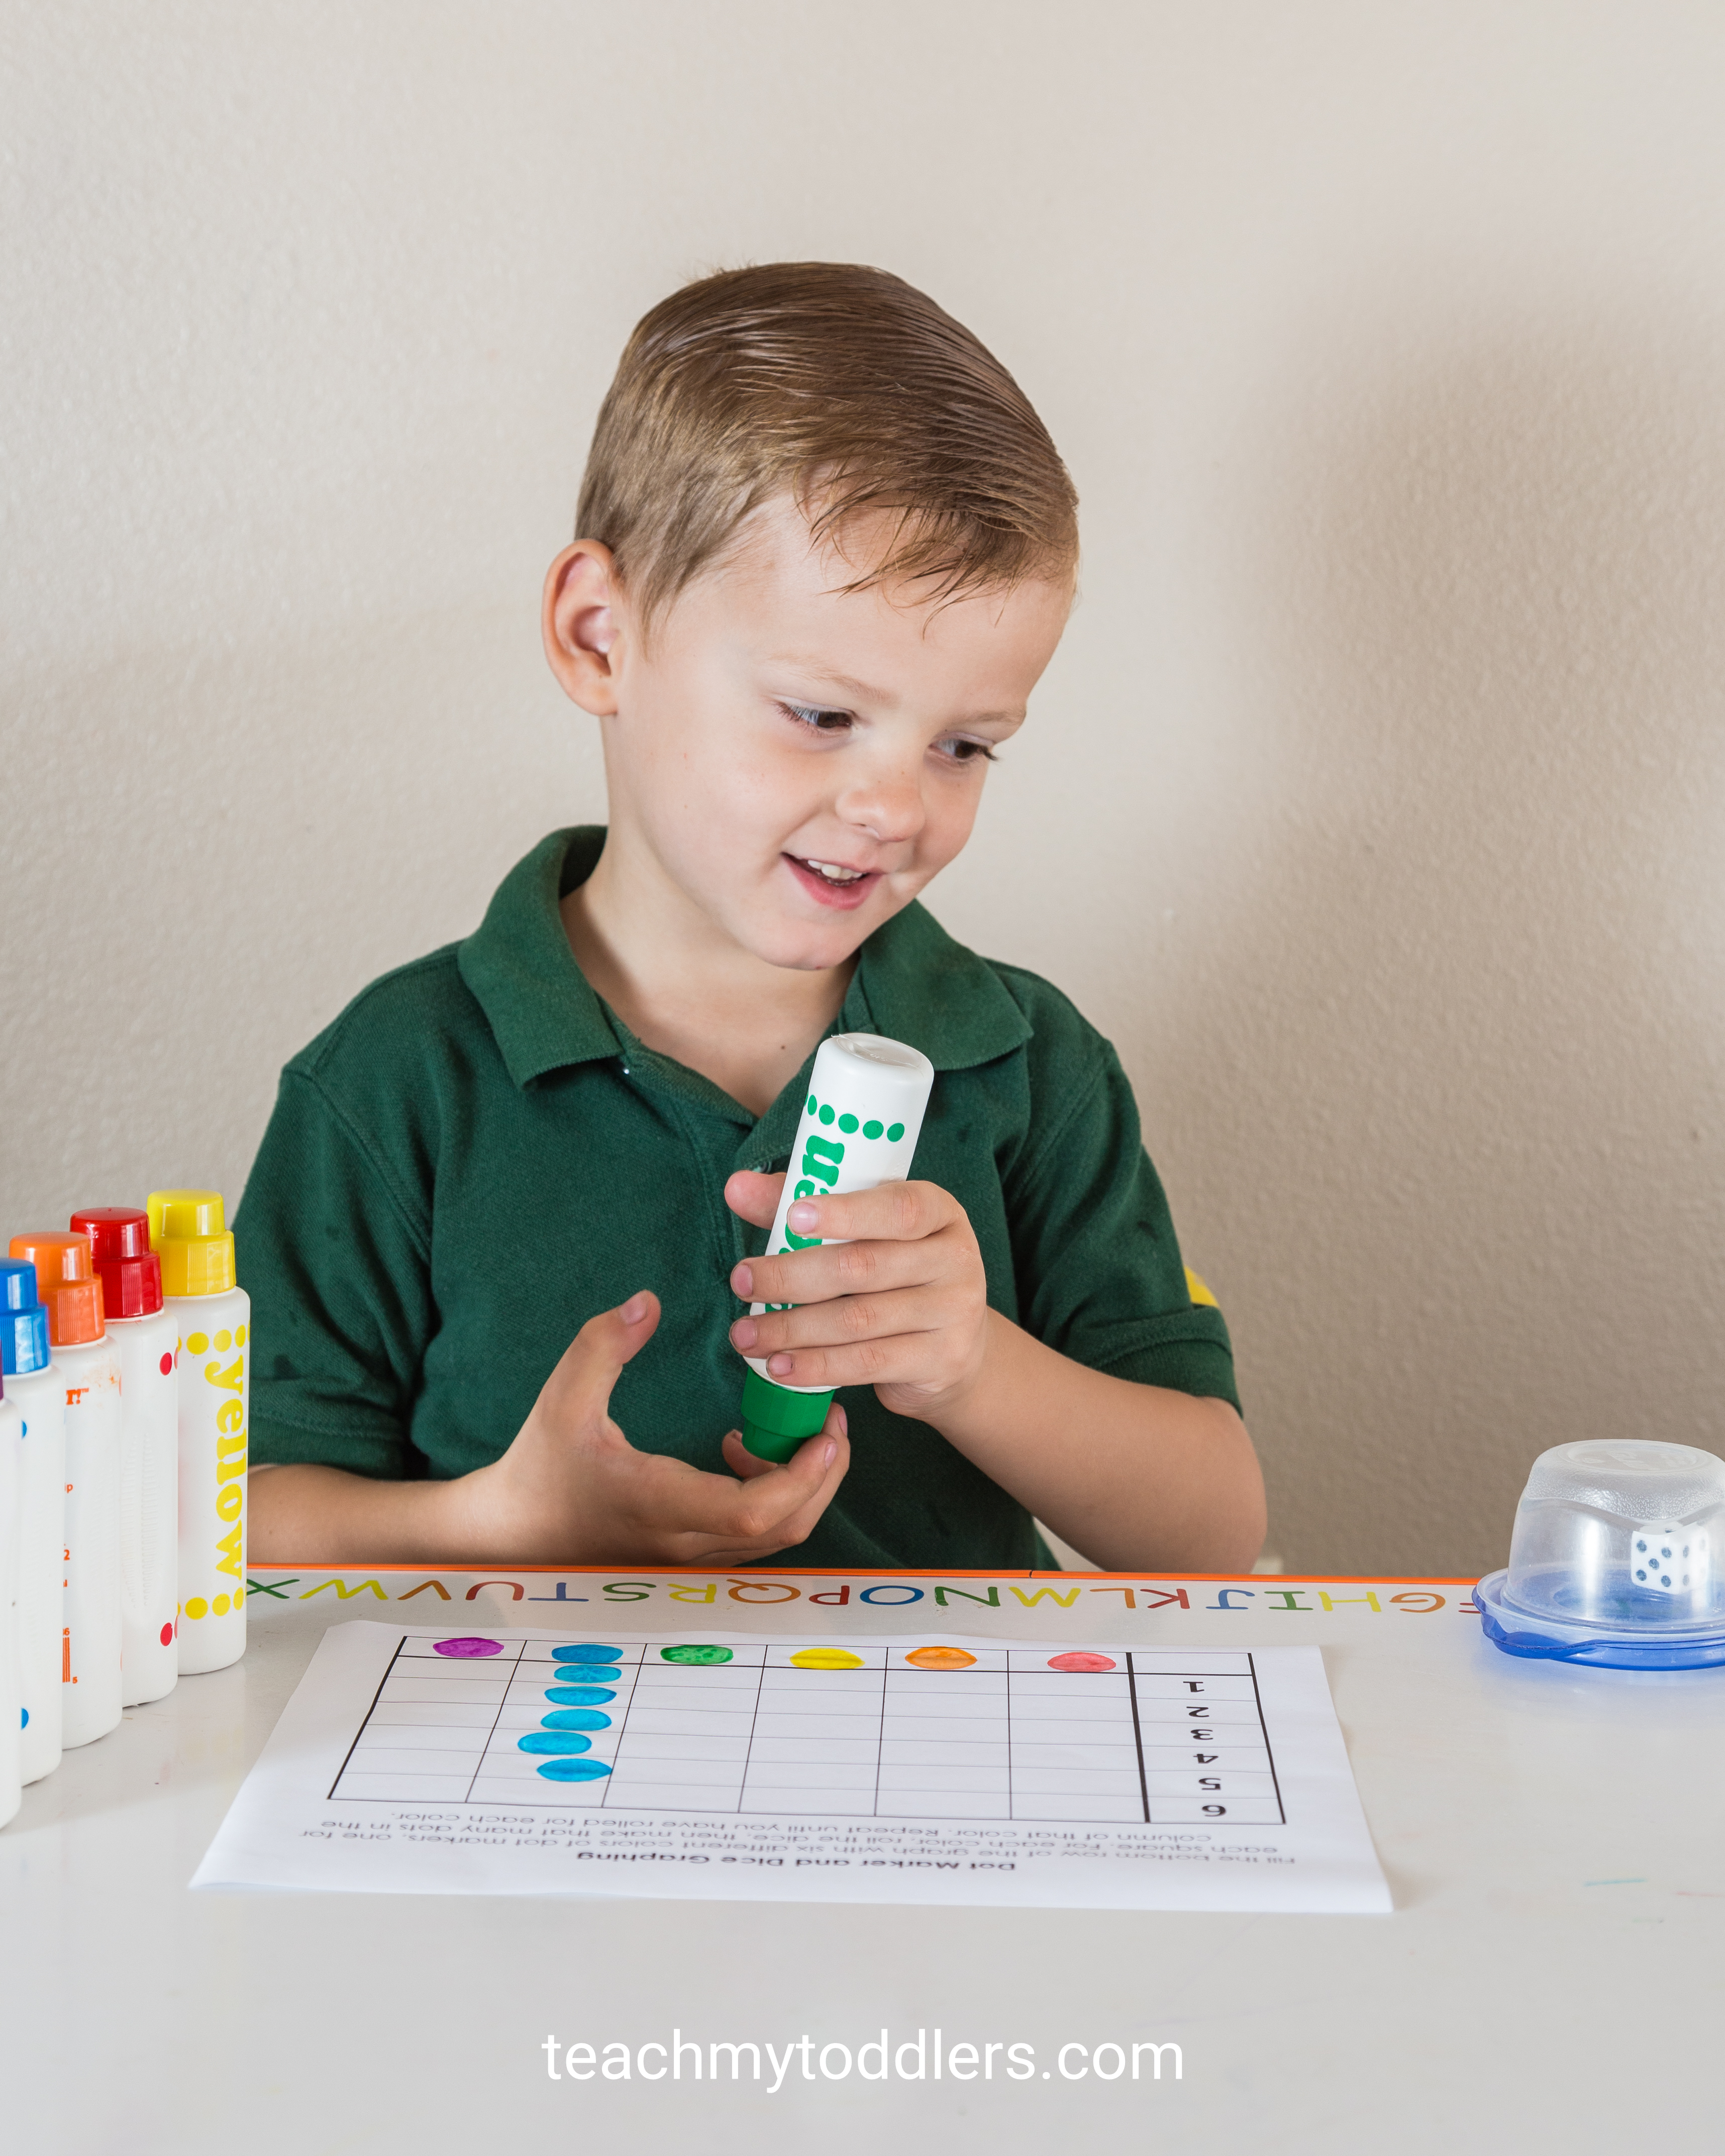 Find out how to use this dot marker dice graph activity to teach your toddlers numbers